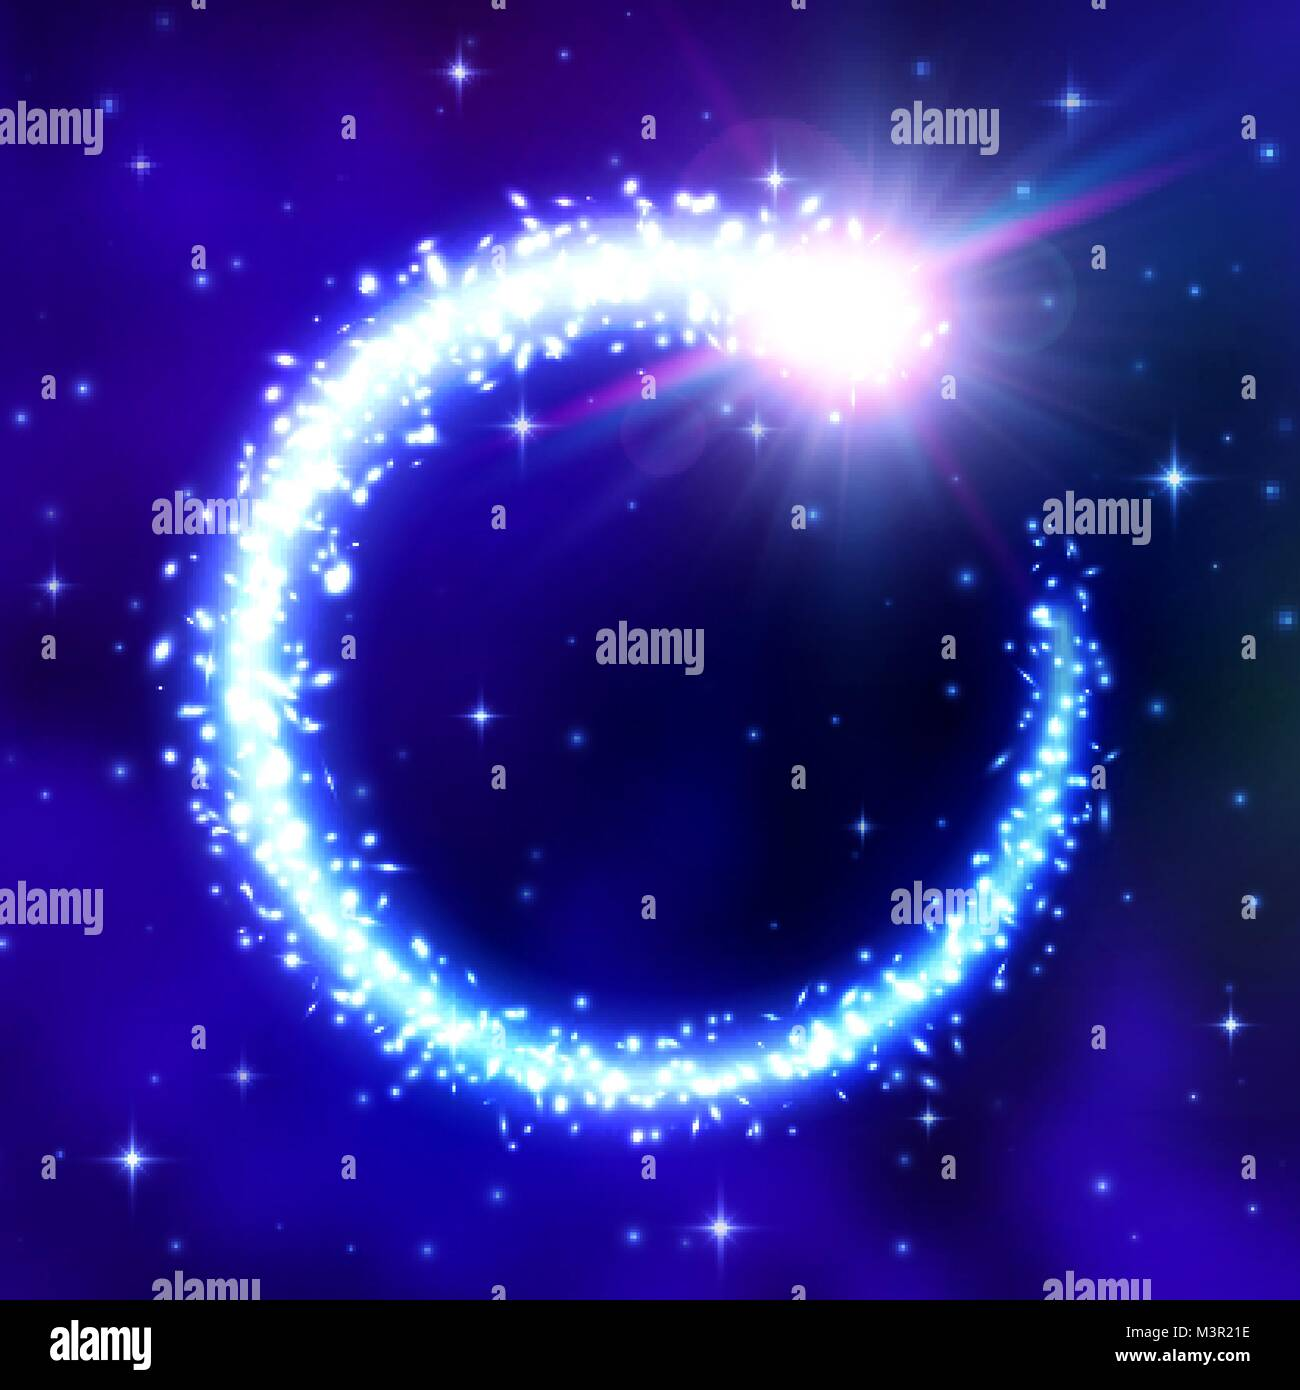 Glowing comet frame on blue space background with night cloudy sky. Flash of light, galactic nebula, flickering - Stock Image